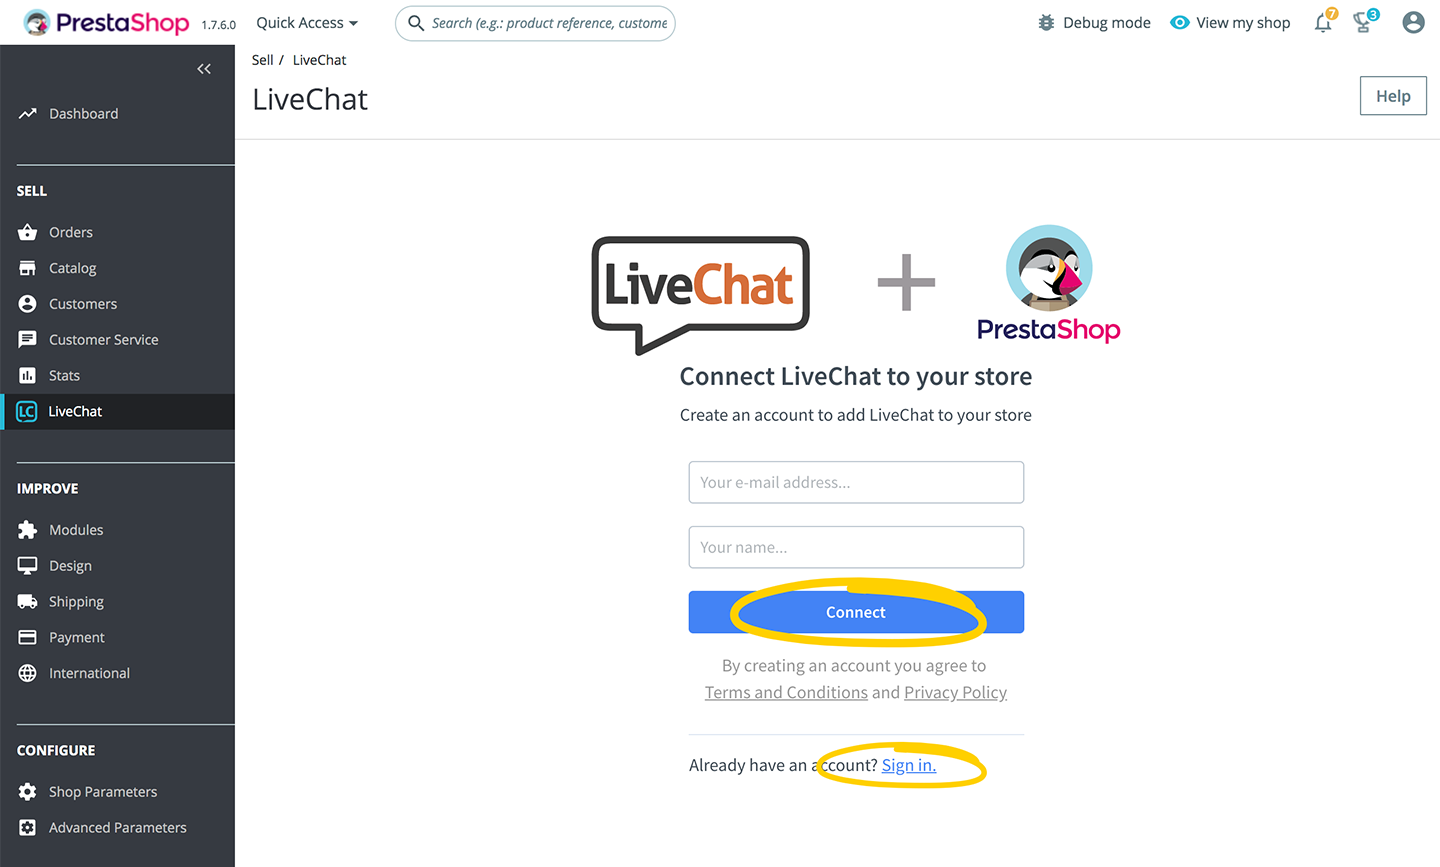 Connect LiveChat to your PrestaShop